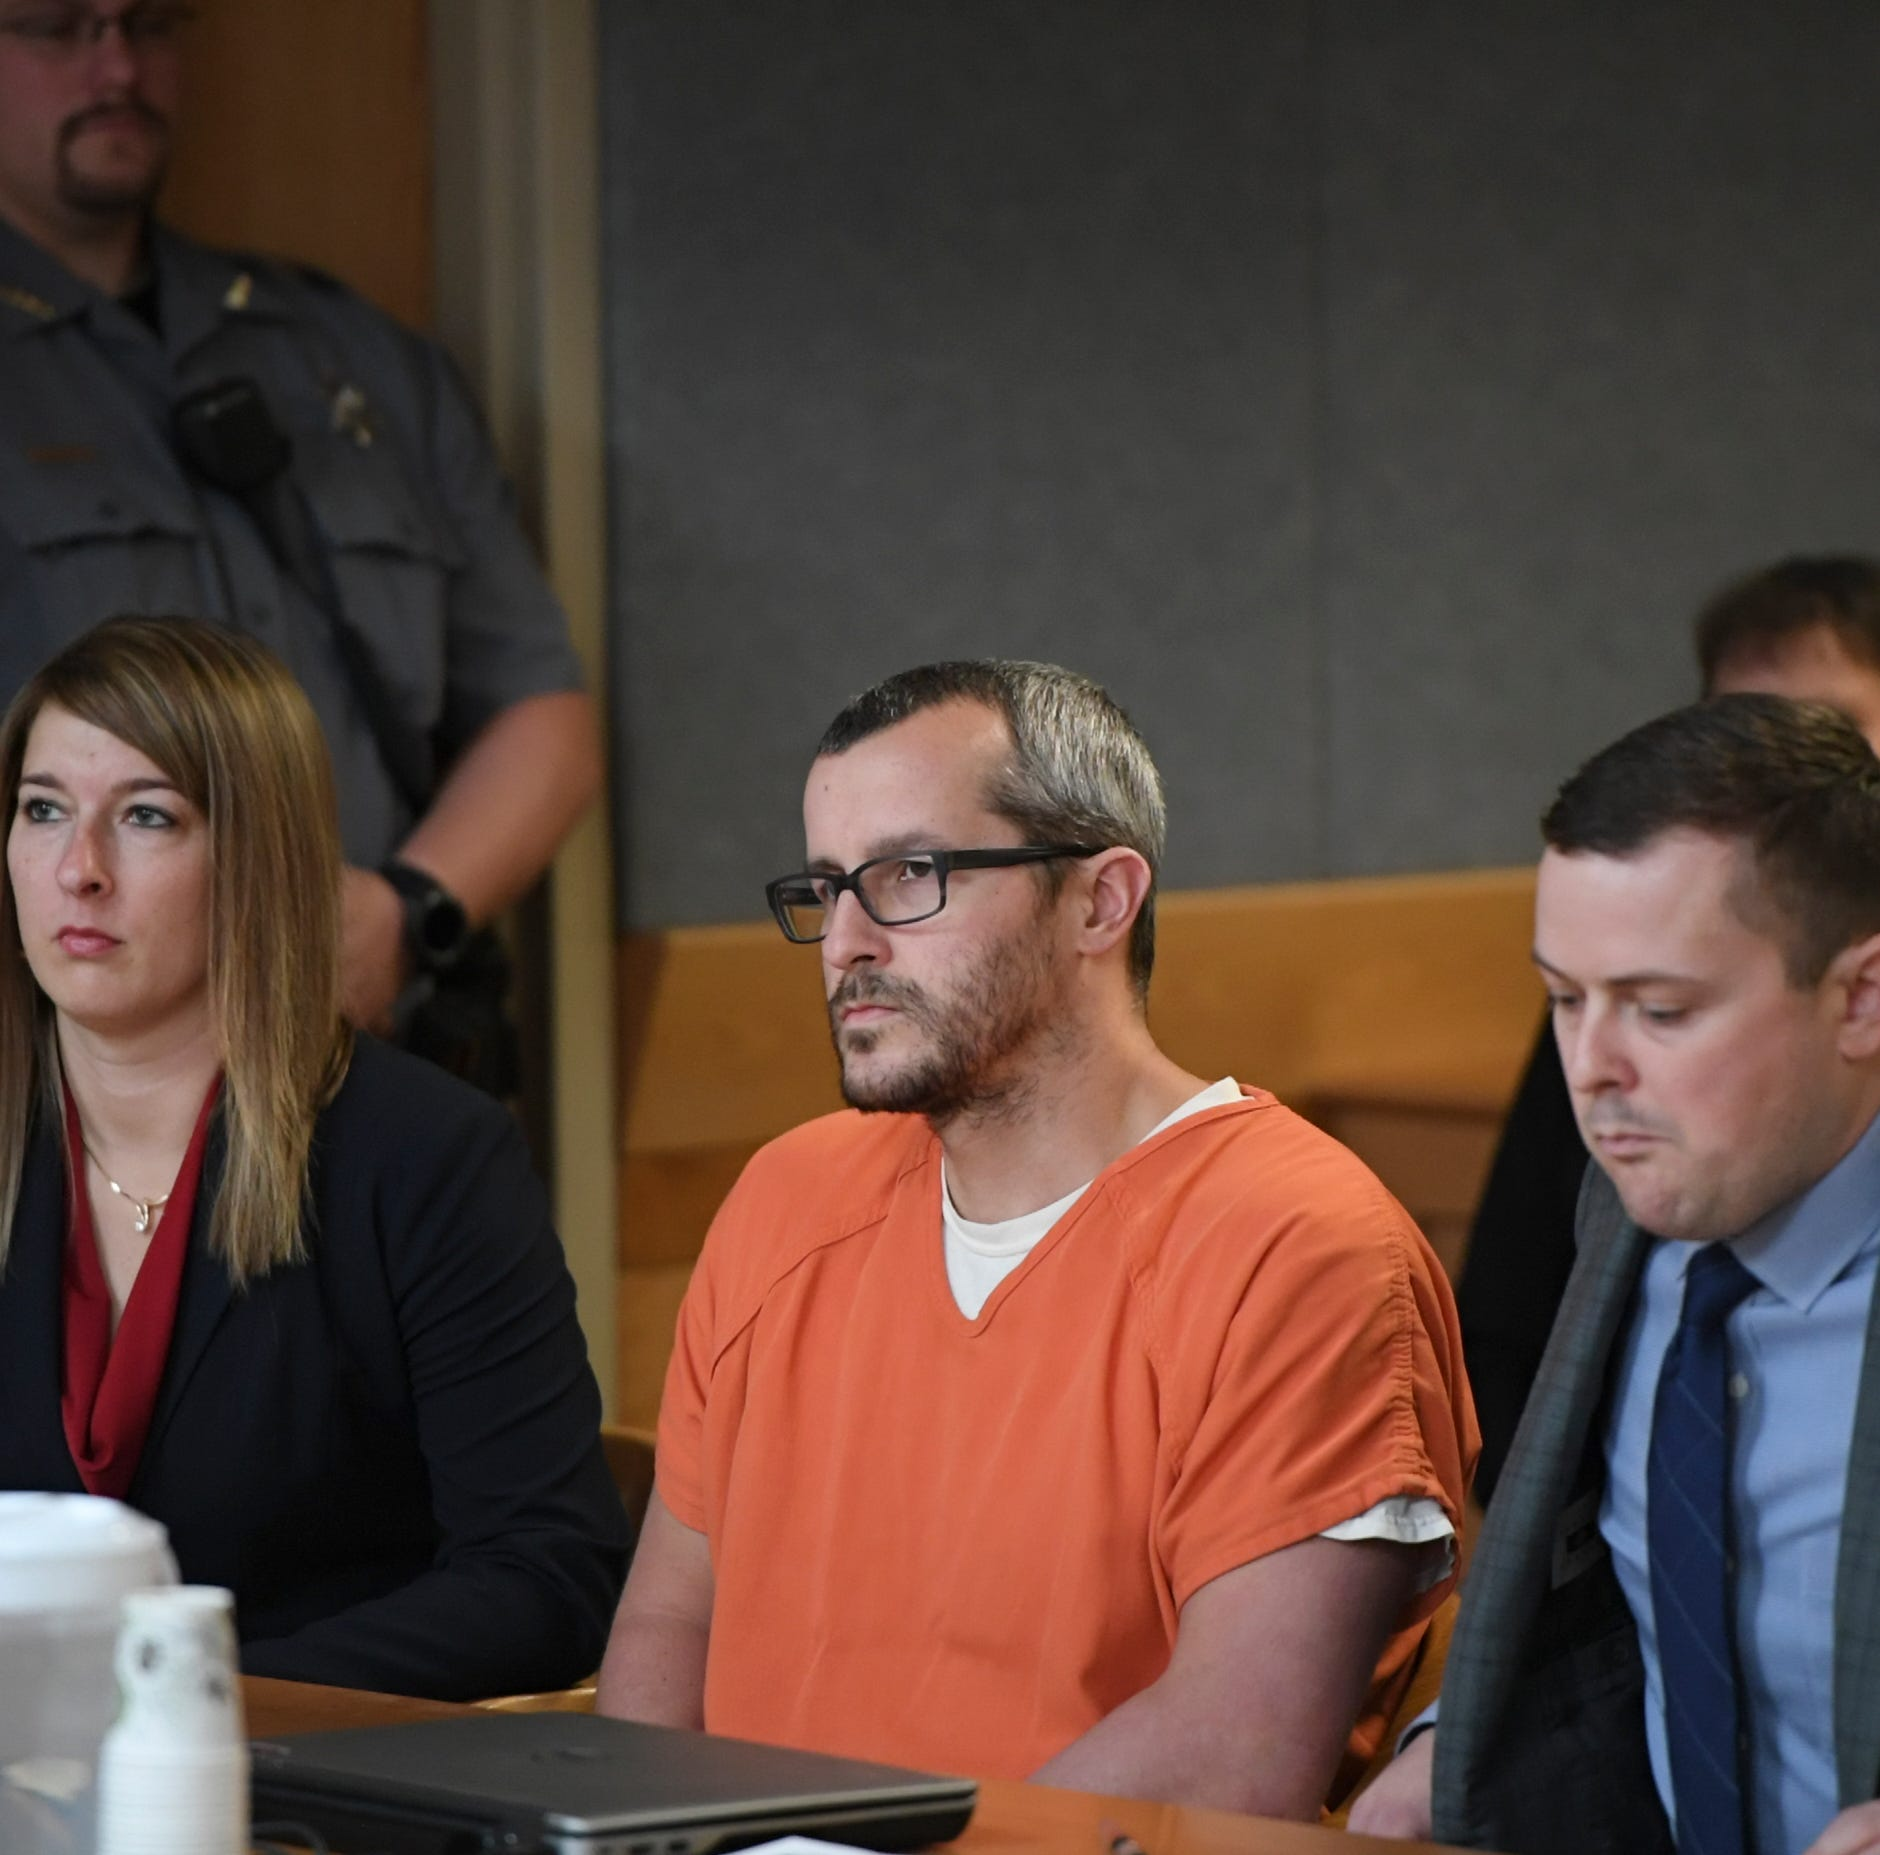 Christopher Watts will serve 3 life sentences for murdering wife Shanann, 2 daughters